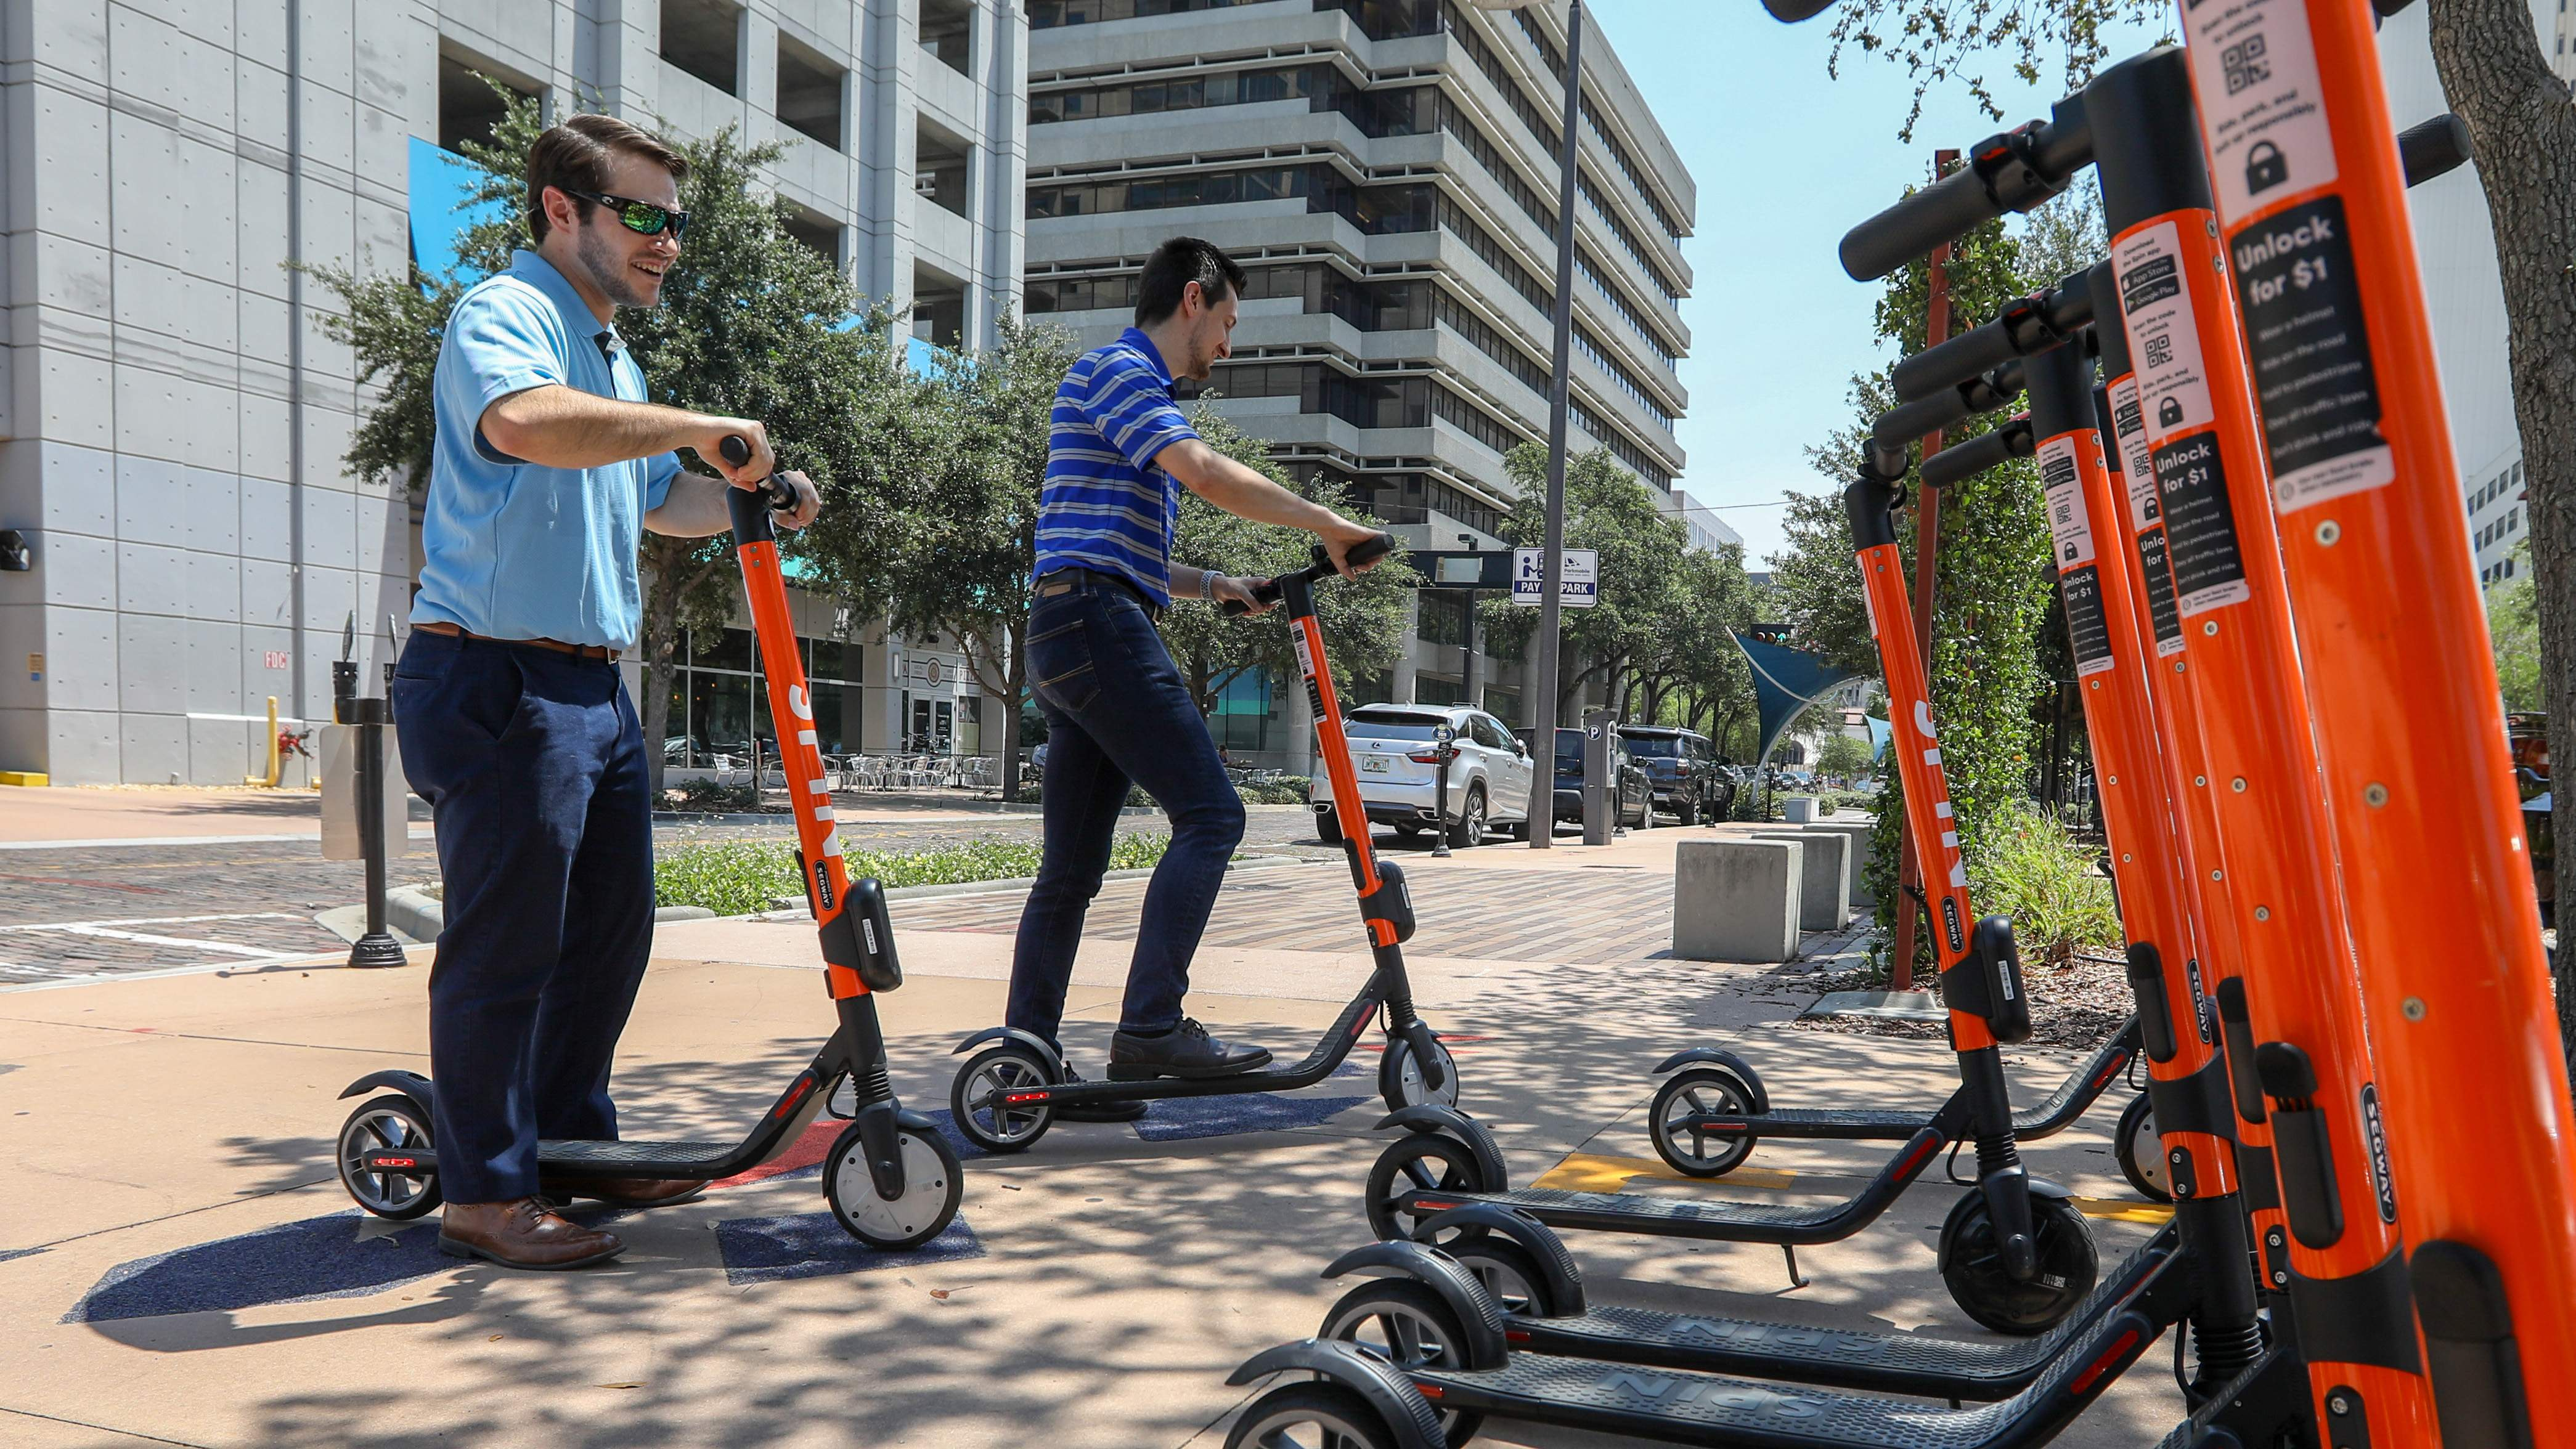 Scooters have arrived on Tampa sidewalks, and there are